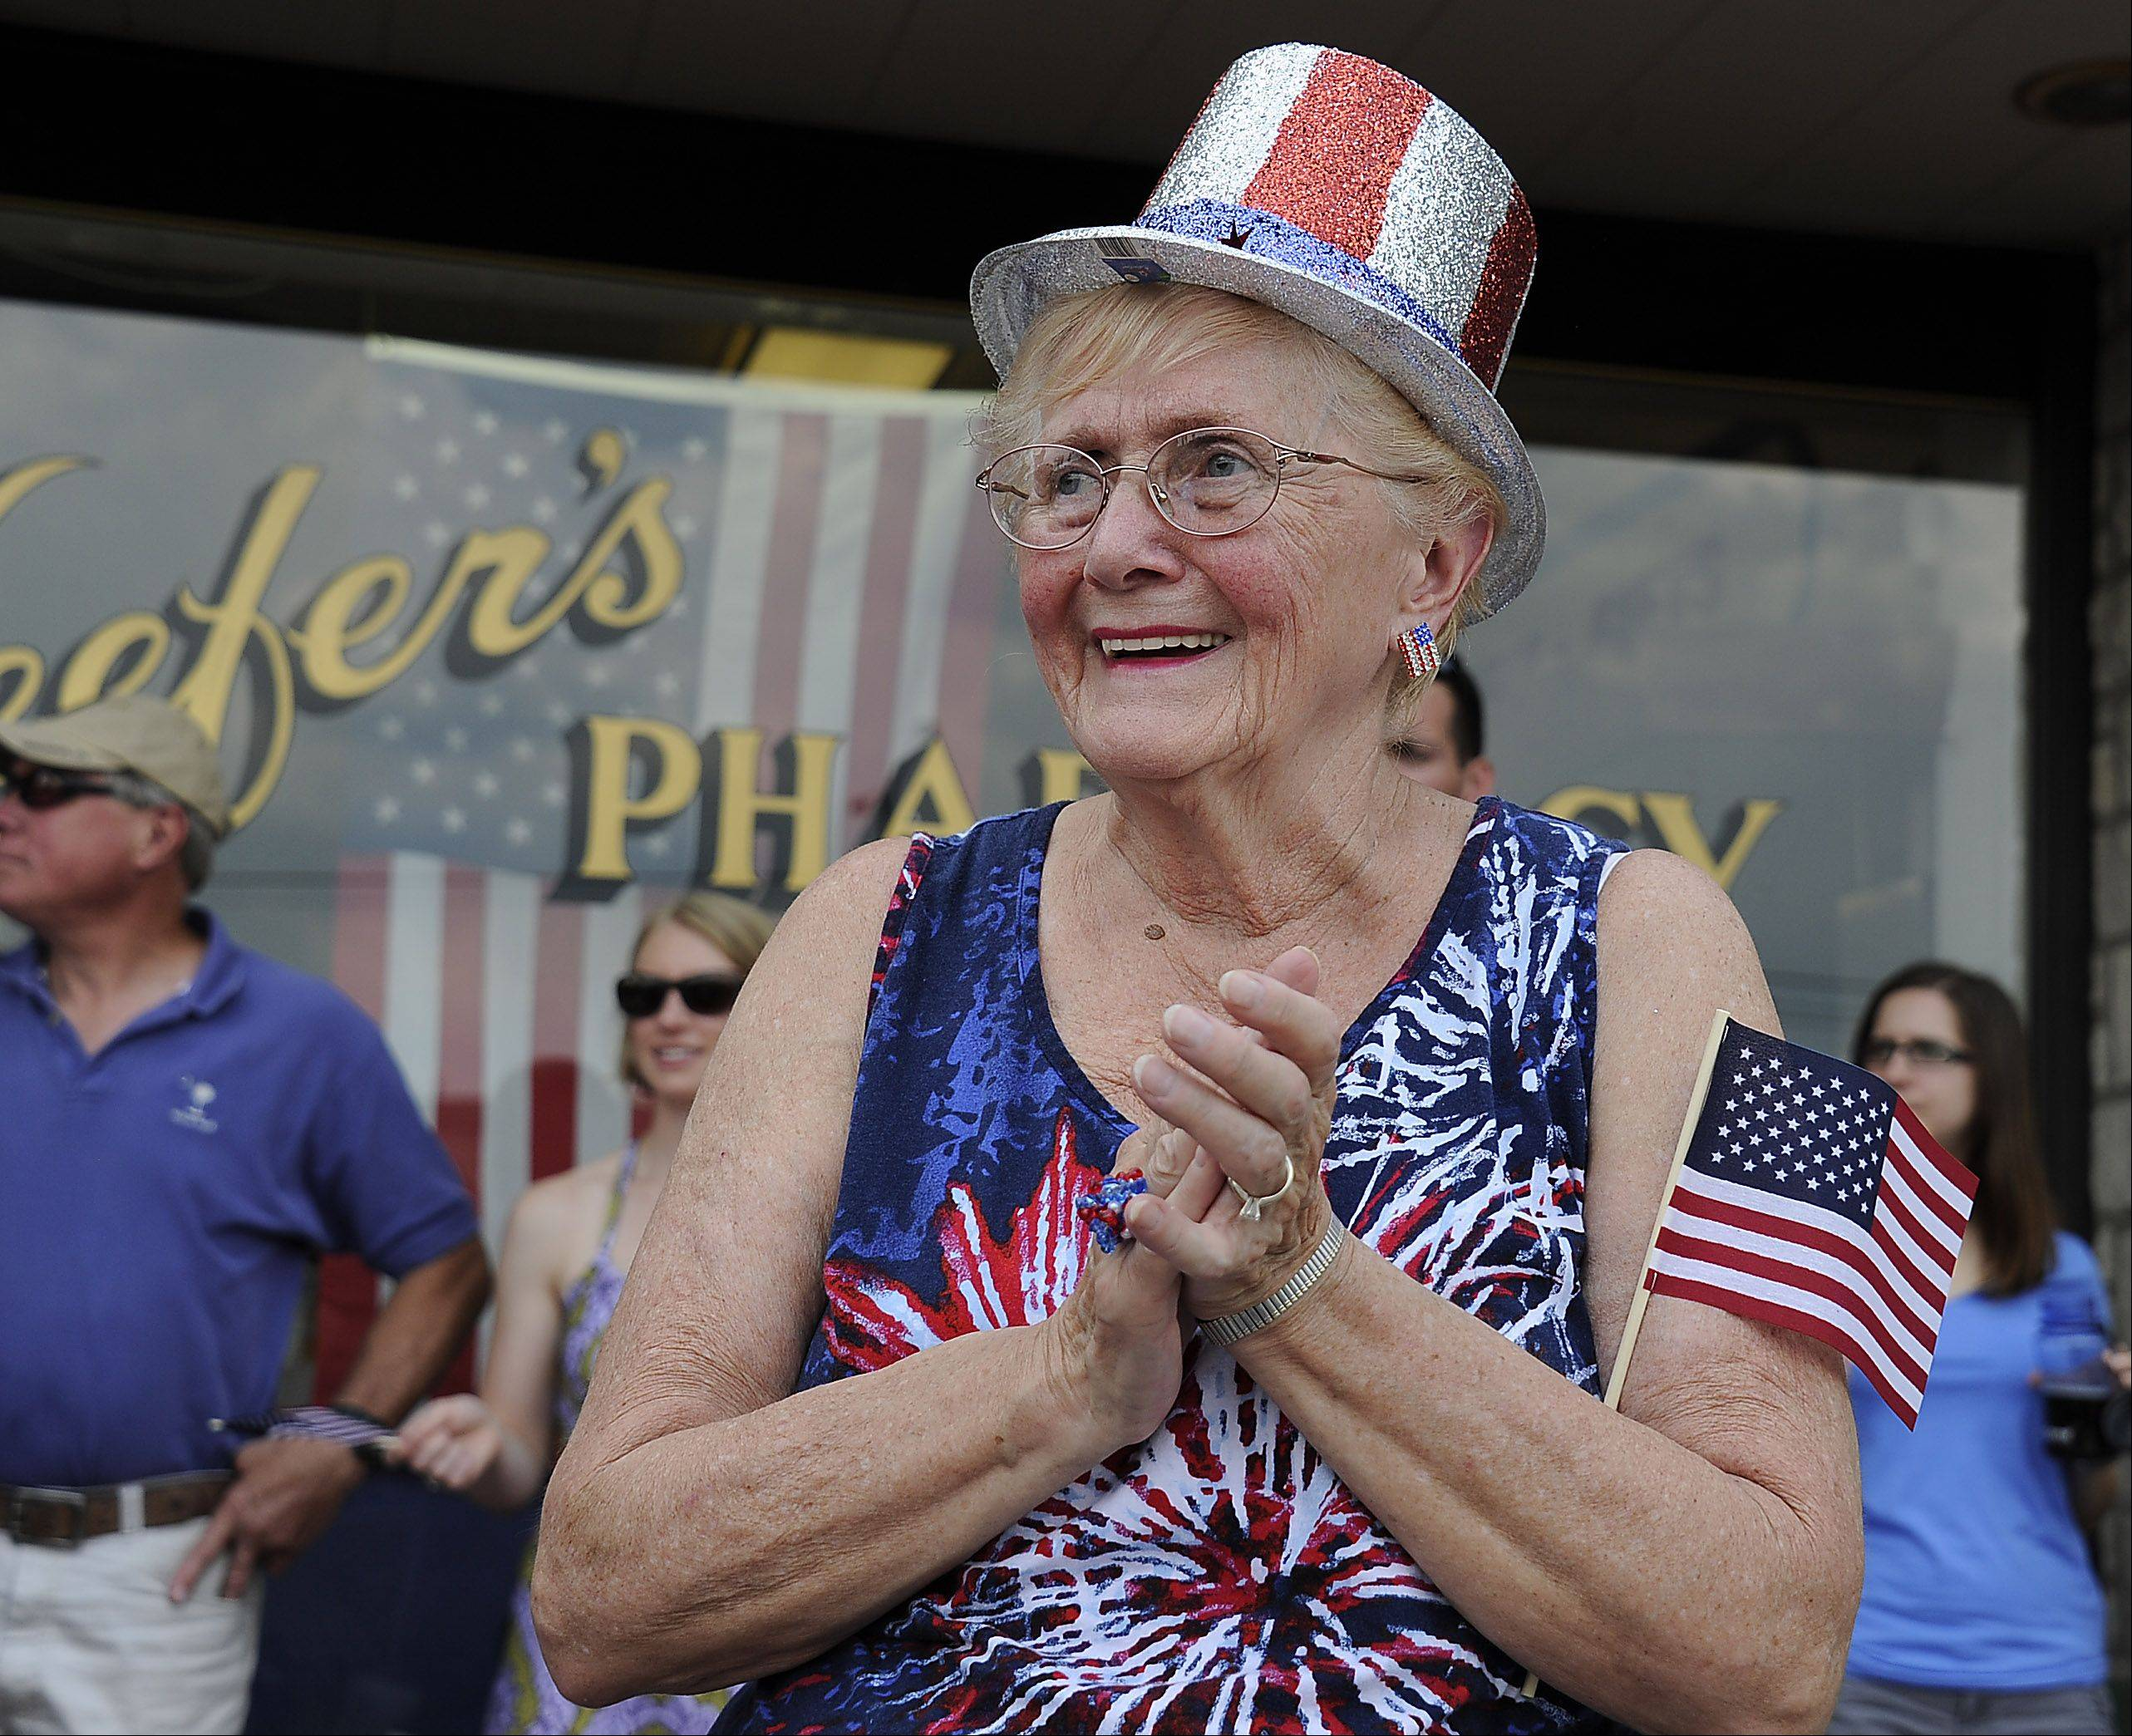 Mt. Prospect July Fourth festivities has Doris Kyllingstad of Park Ridge cheering on the military as they march in the parade.